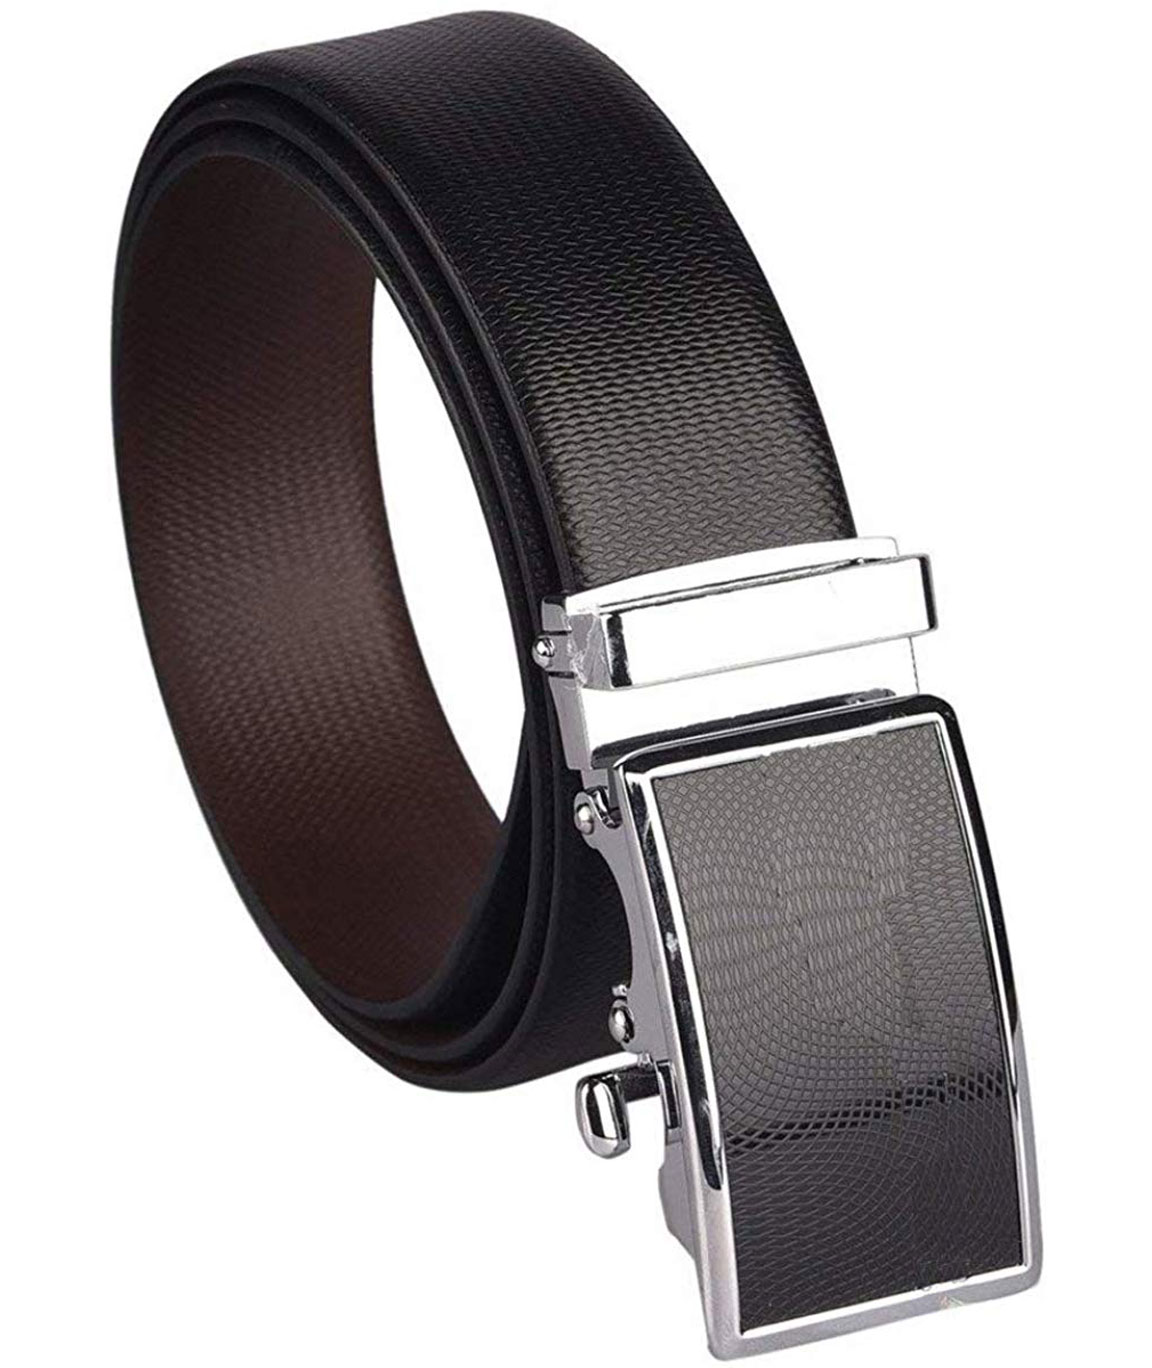 ZORO Men`s Genuine Leather Italian Reversible Belt, Black and Brown, (1 Year Guarantee) - belts for mens - belts for men casual stylish leather- belts for men formal branded RSIHY-13G-